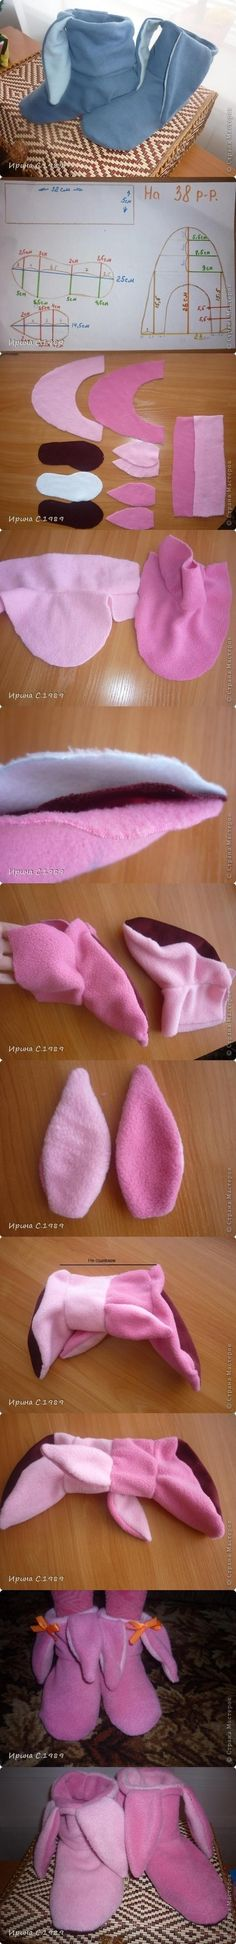 DIY Bunny Shoes DIY Projects | UsefulDIY.com